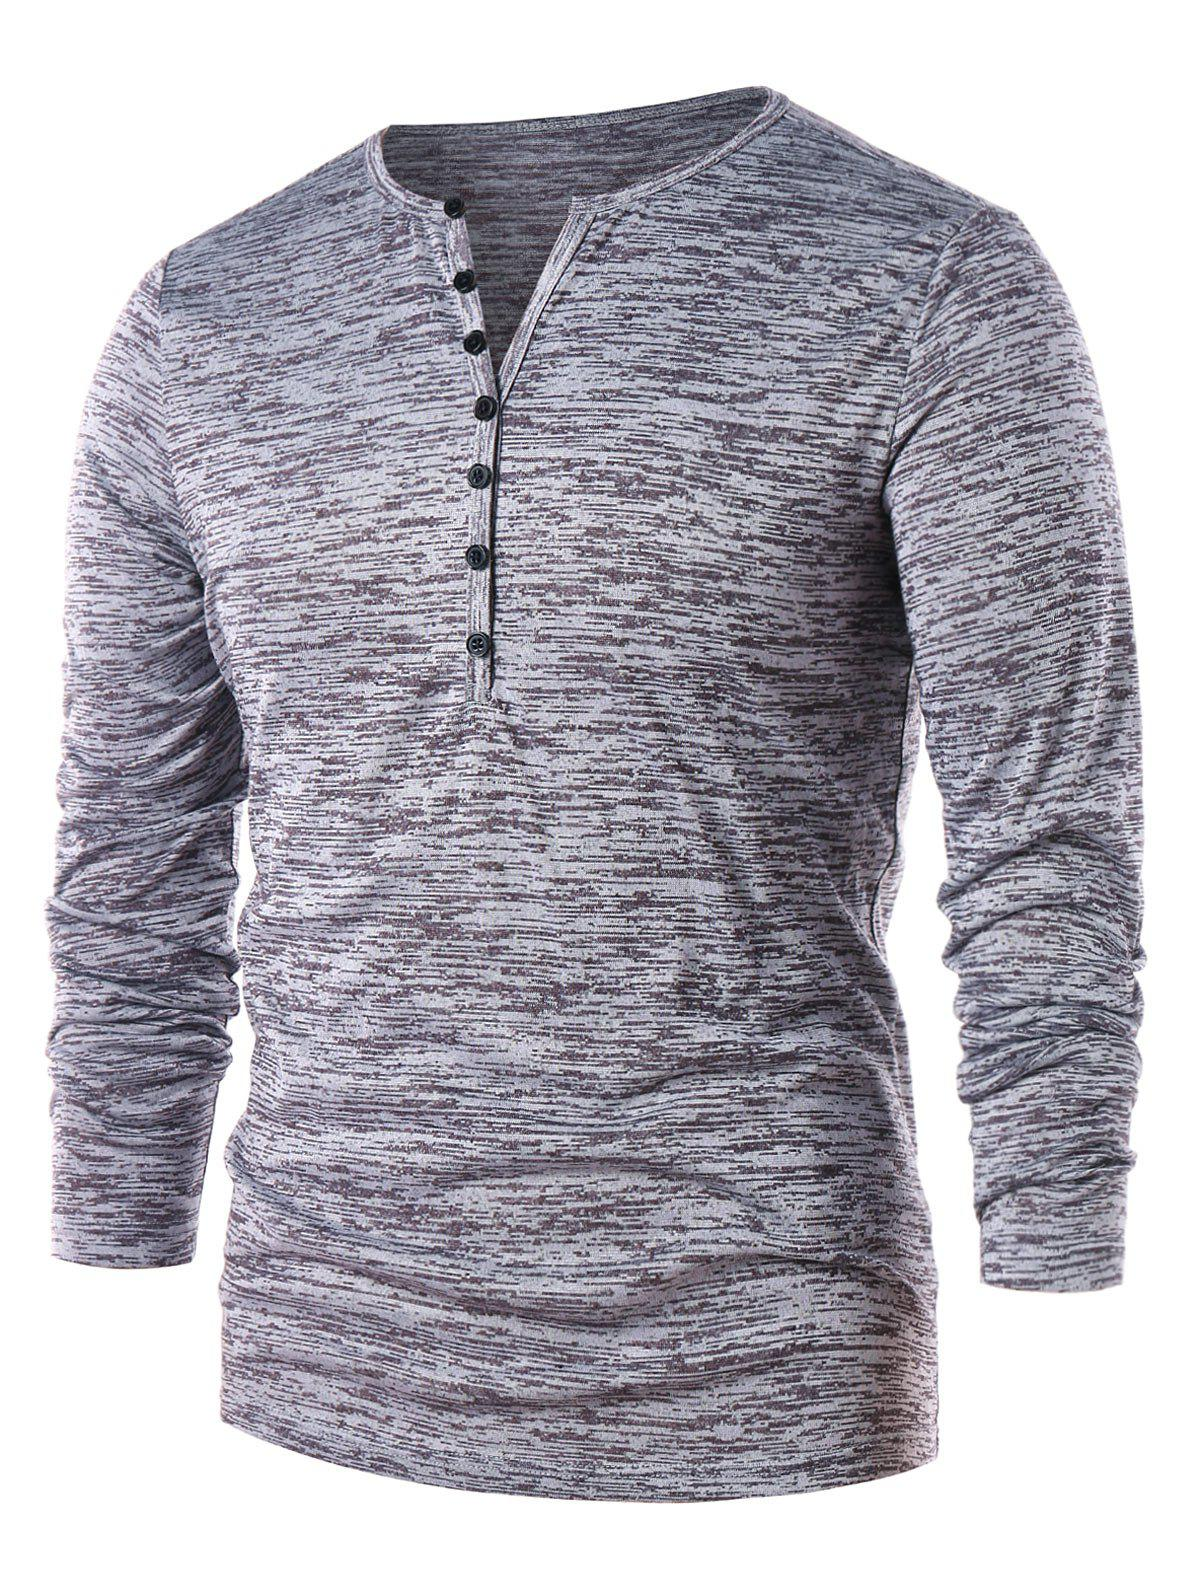 Casual Long Sleeve Henley T-shirt - GRAY M